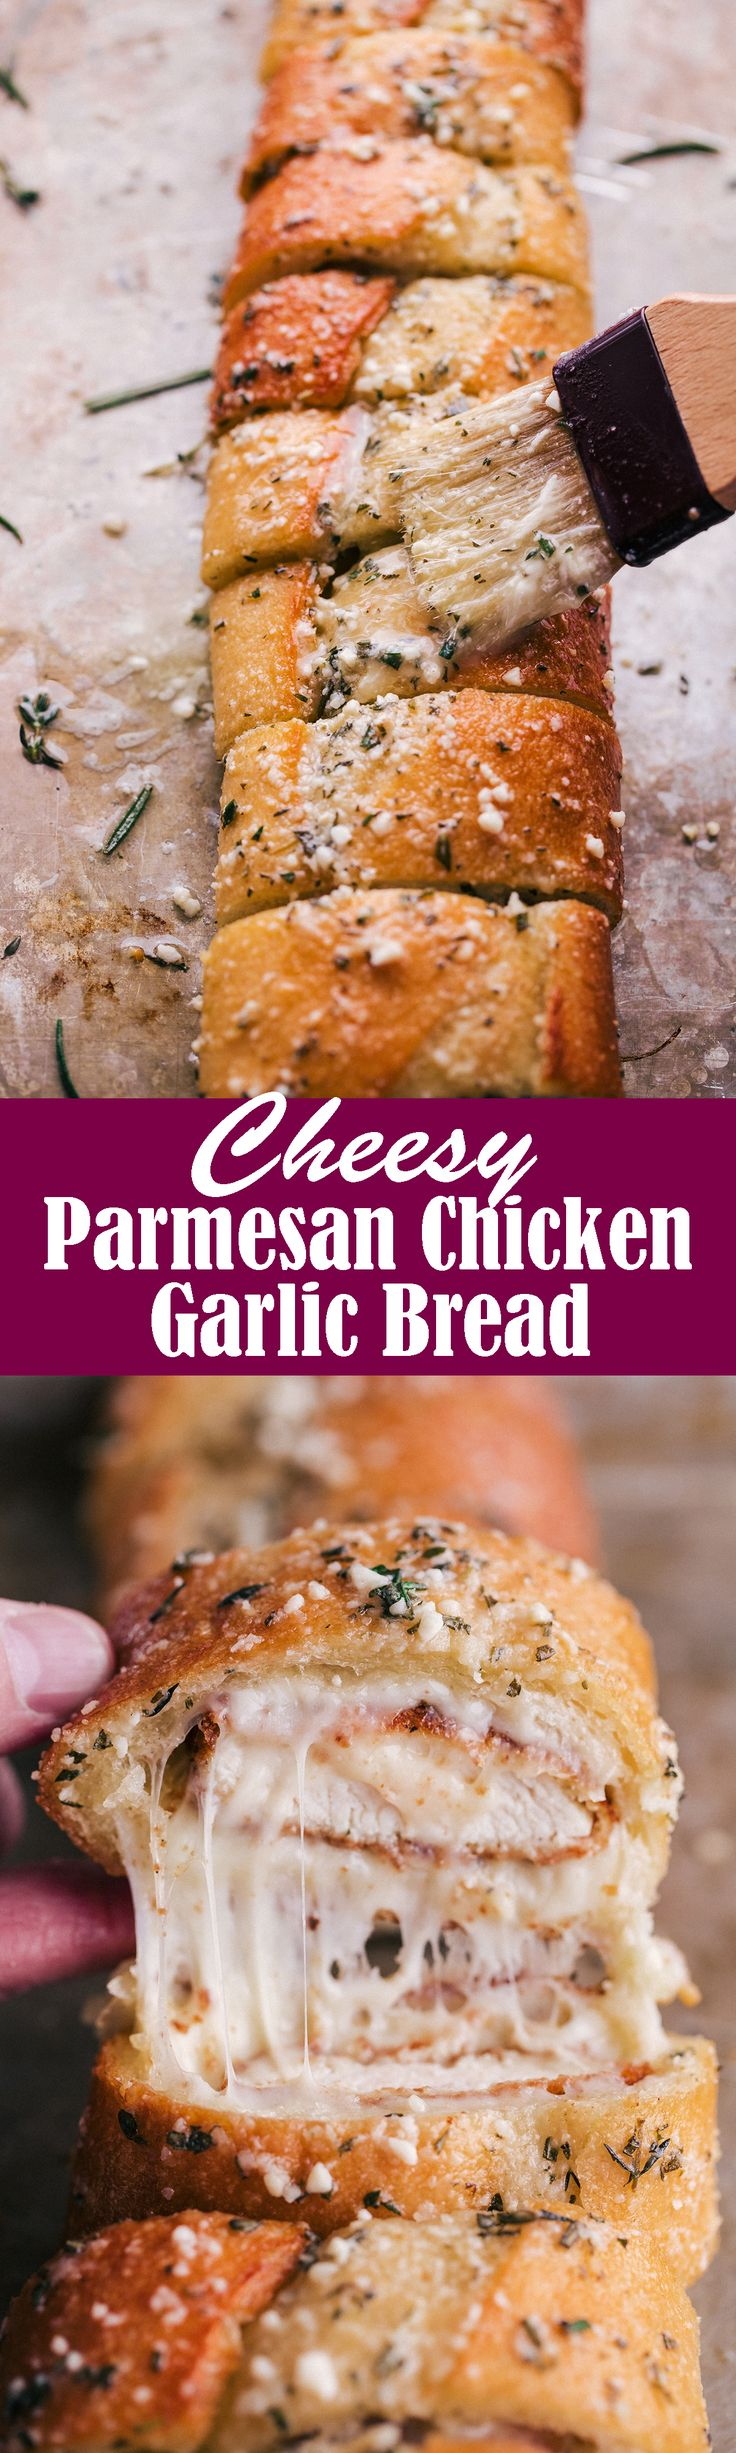 Cheesy Parmesan Chicken Garlic Bread